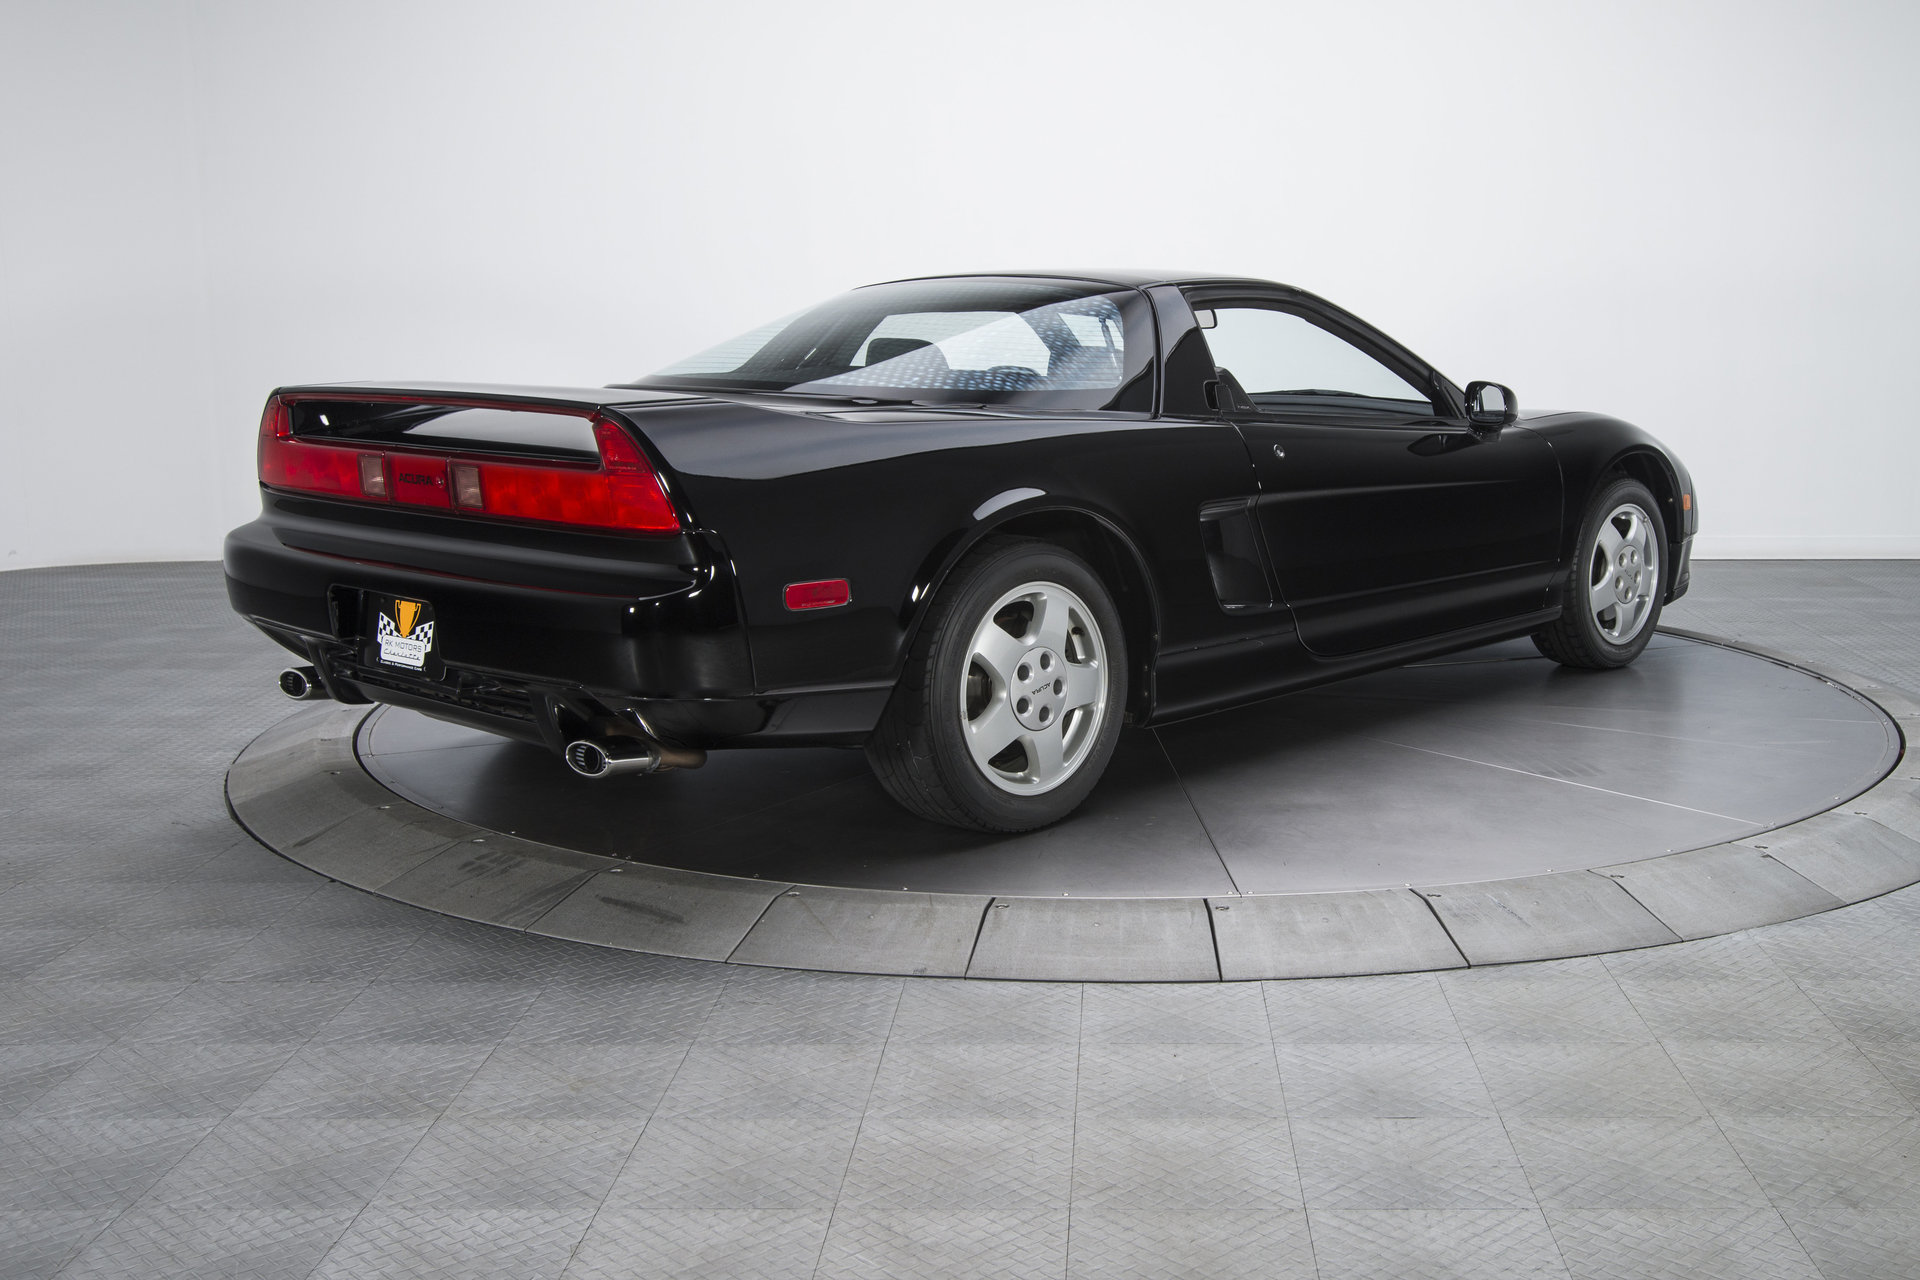 For Sale 1991 Acura NSX For Sale 1991 Acura NSX ...